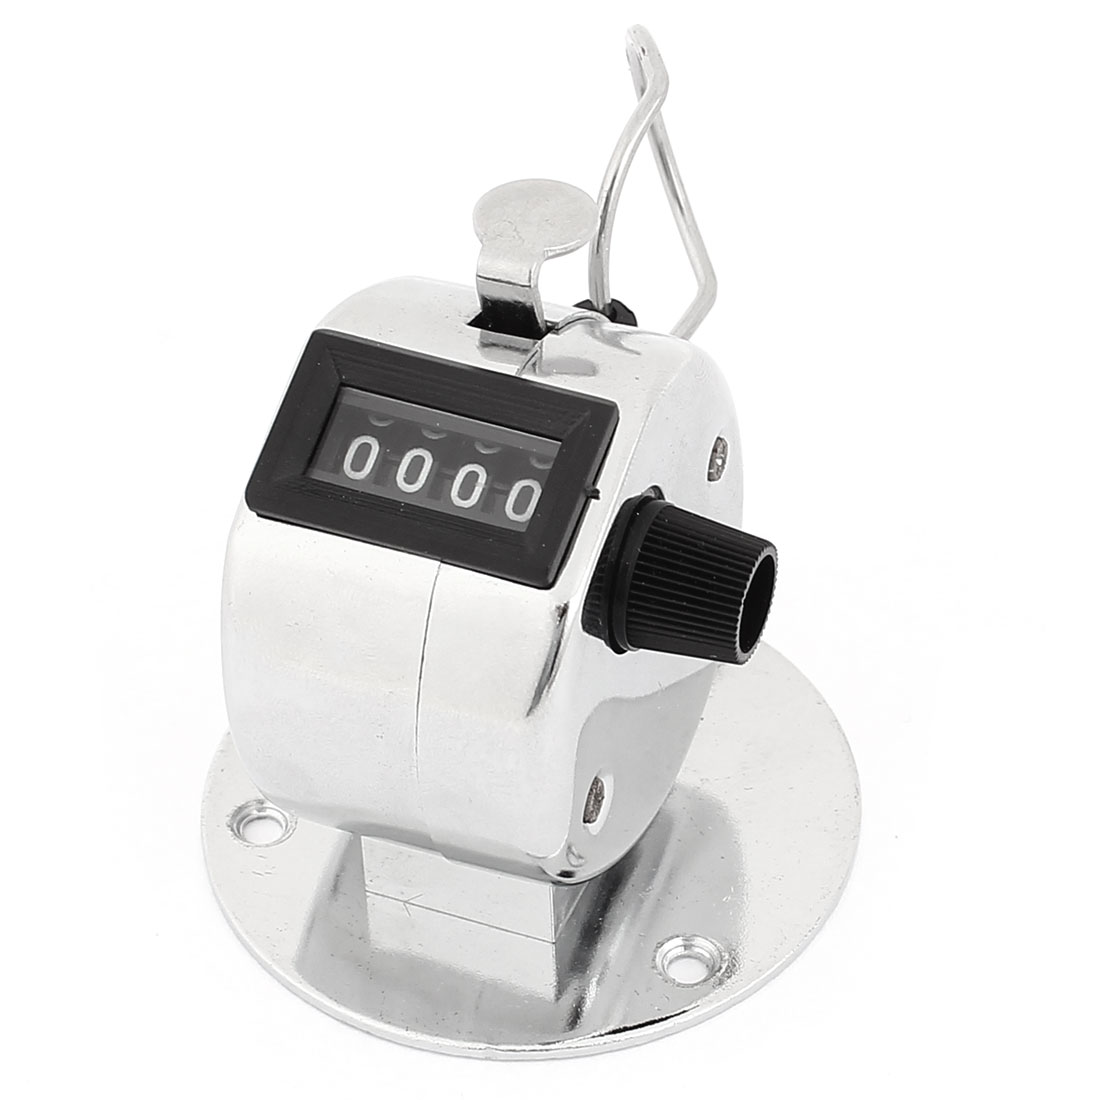 Portable Hand Tally Mechanic Counter 4 Digit Number Arithmometer